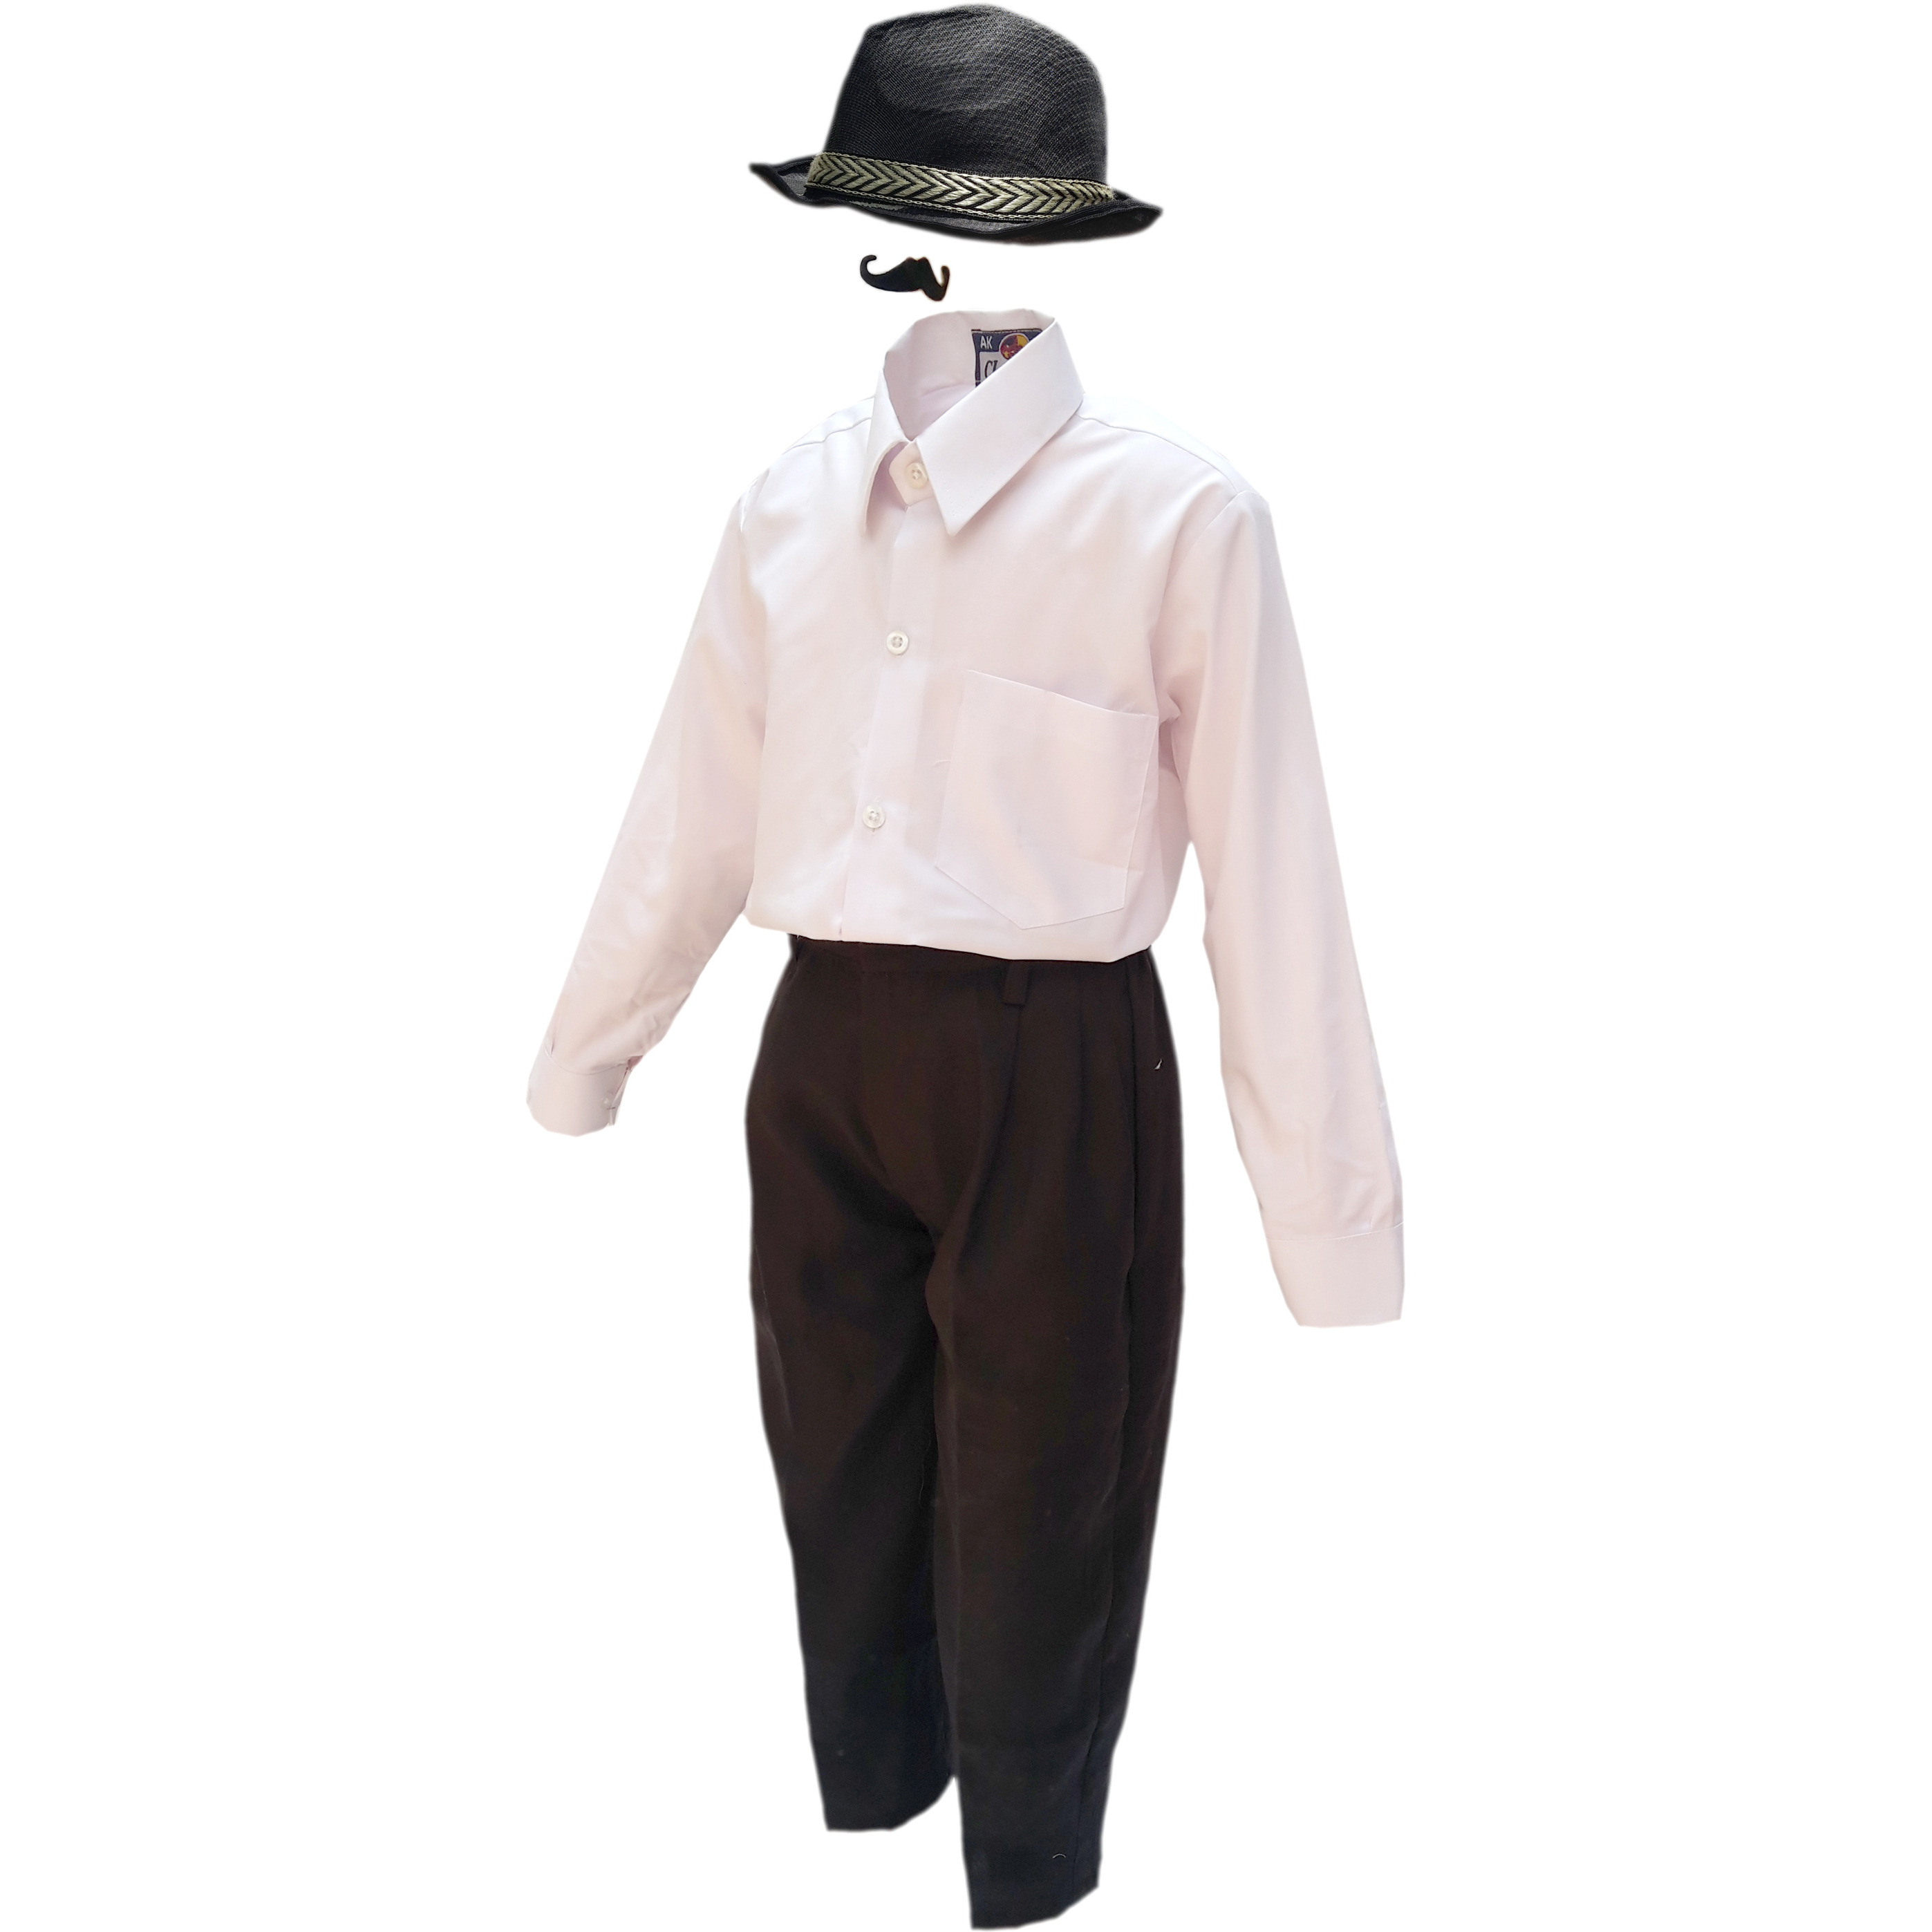 KFD Bhagat Singh fancy dress for kids,National Hero/freedom figter Costume for Independence Day/Republic Day/Annual function/Theme party/Competition/Stage Shows Dress